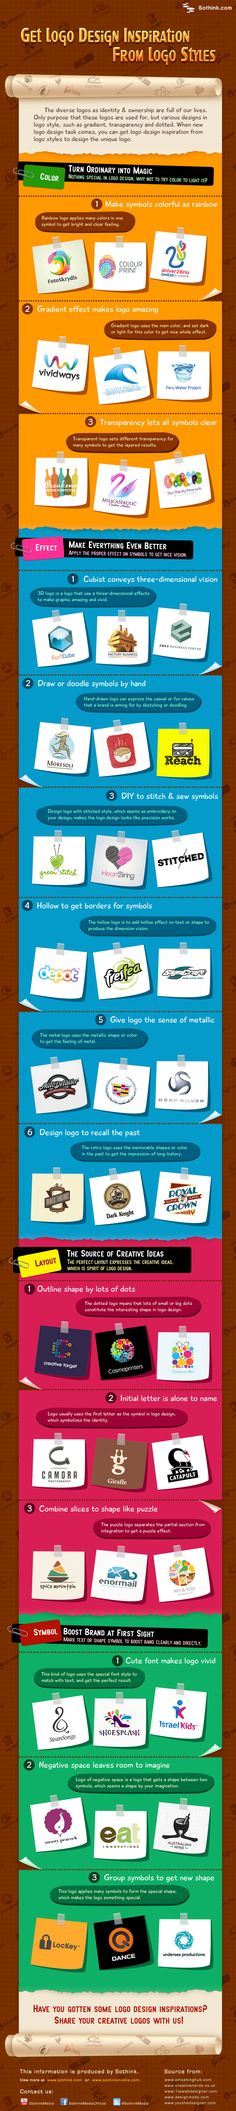 INFOGRAPHIC: Get Logo Design Inspiration from Logo Styles and Logotypes